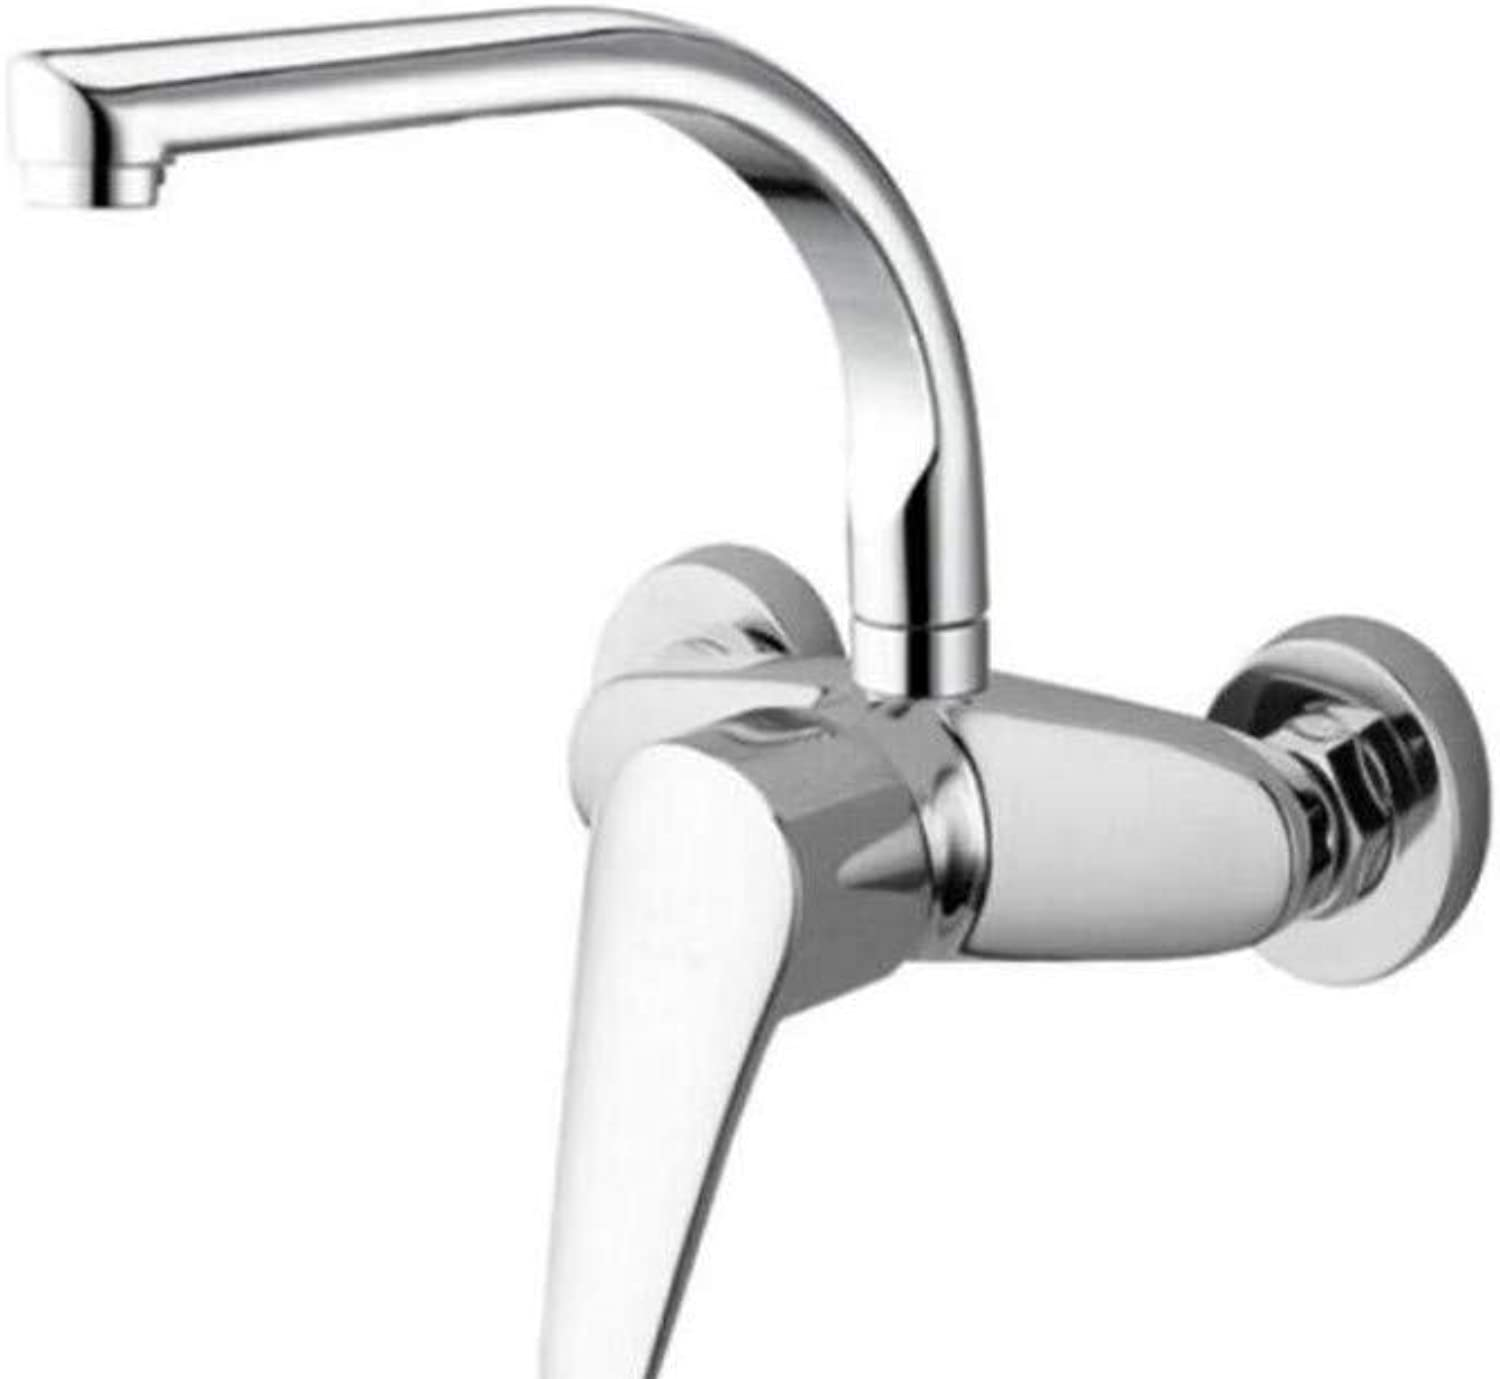 Taps Kitchen Sinktaps Mixer Swivel Faucet Sink Copper Wall Kitchen Faucet Cold and Hot Single